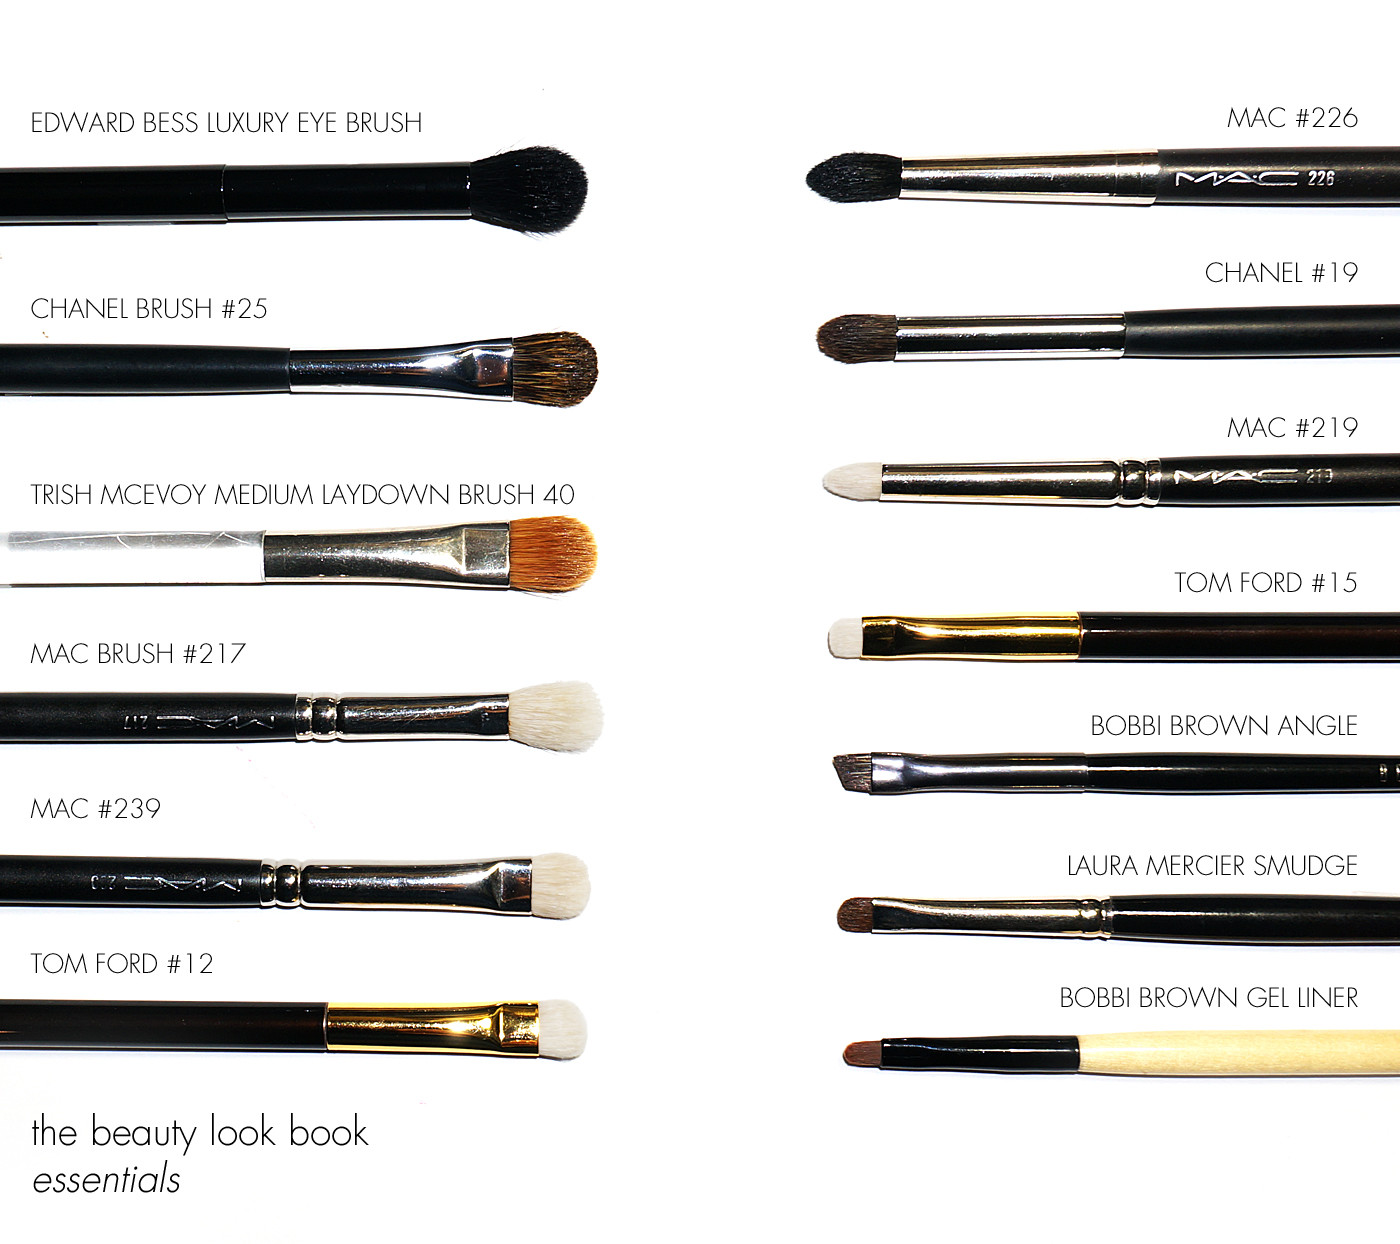 bobbi brown brushes uses. the beauty look book essentials | eye brushes bobbi brown uses t